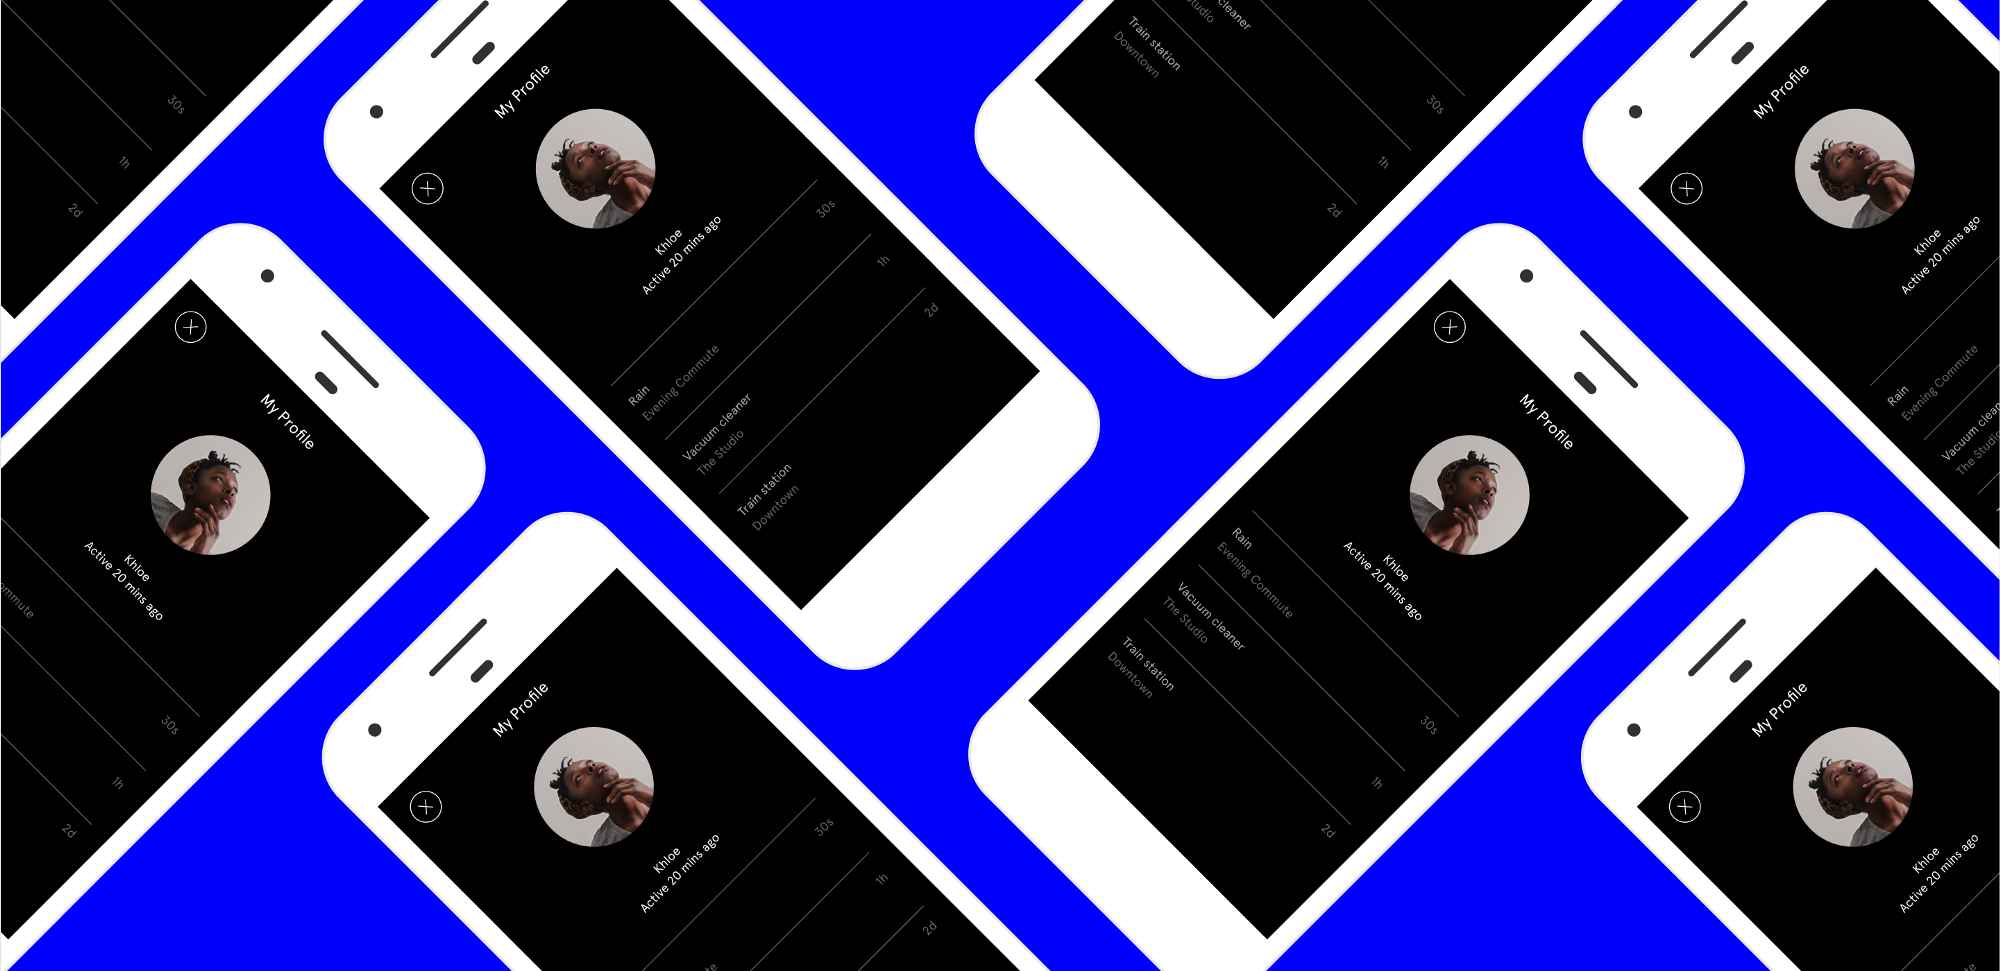 introducing figma mirror for android figma design android users and designers we ve neglected you for too long today we re happy to announce that figma s mirror app has come to android